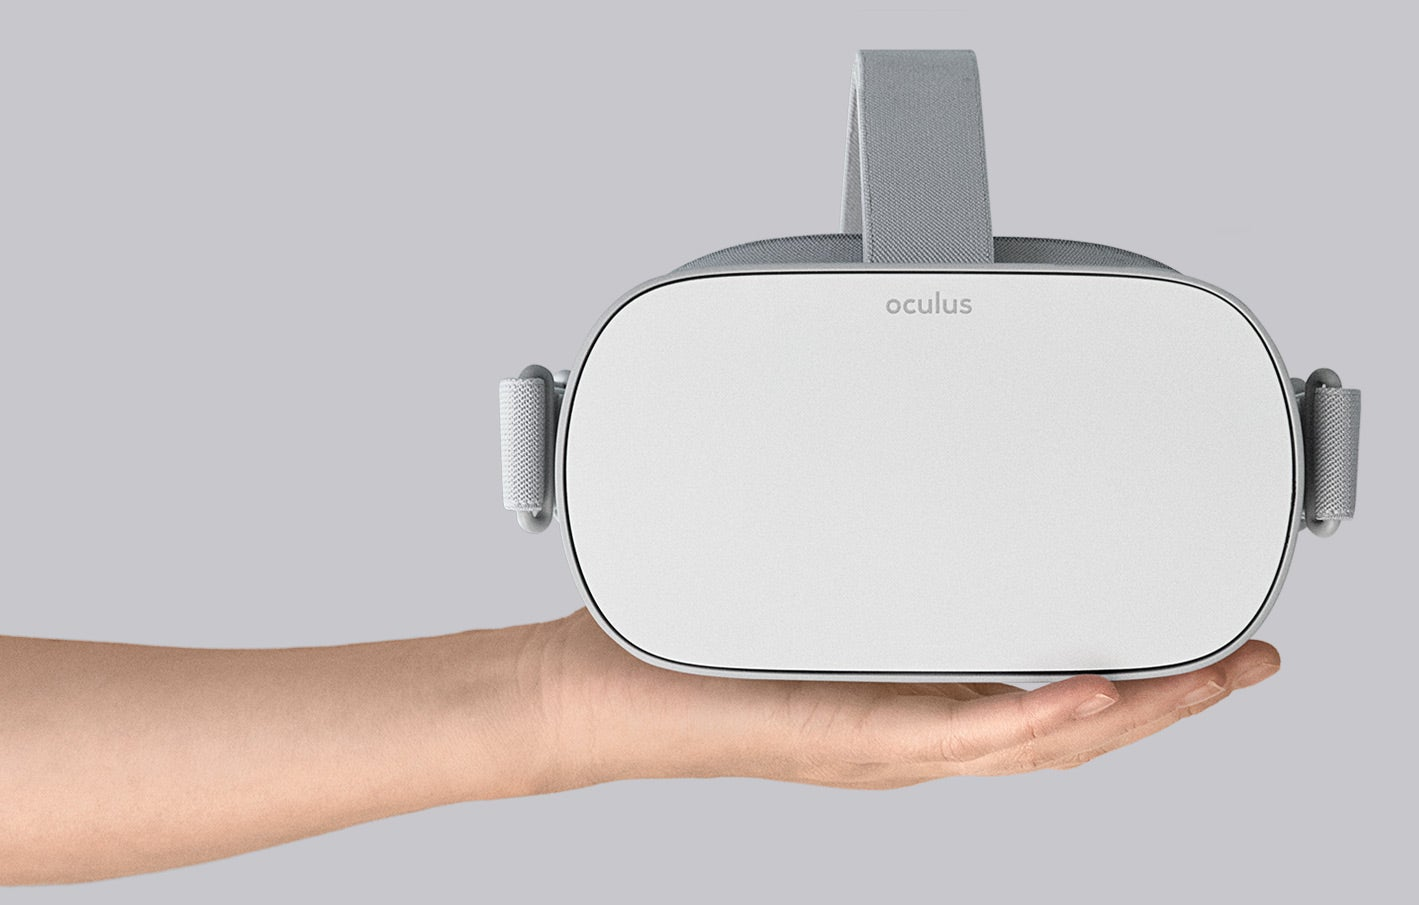 aa792be08e3c Oculus Go Could Make Facebook the Leader in Virtual Reality -- The ...